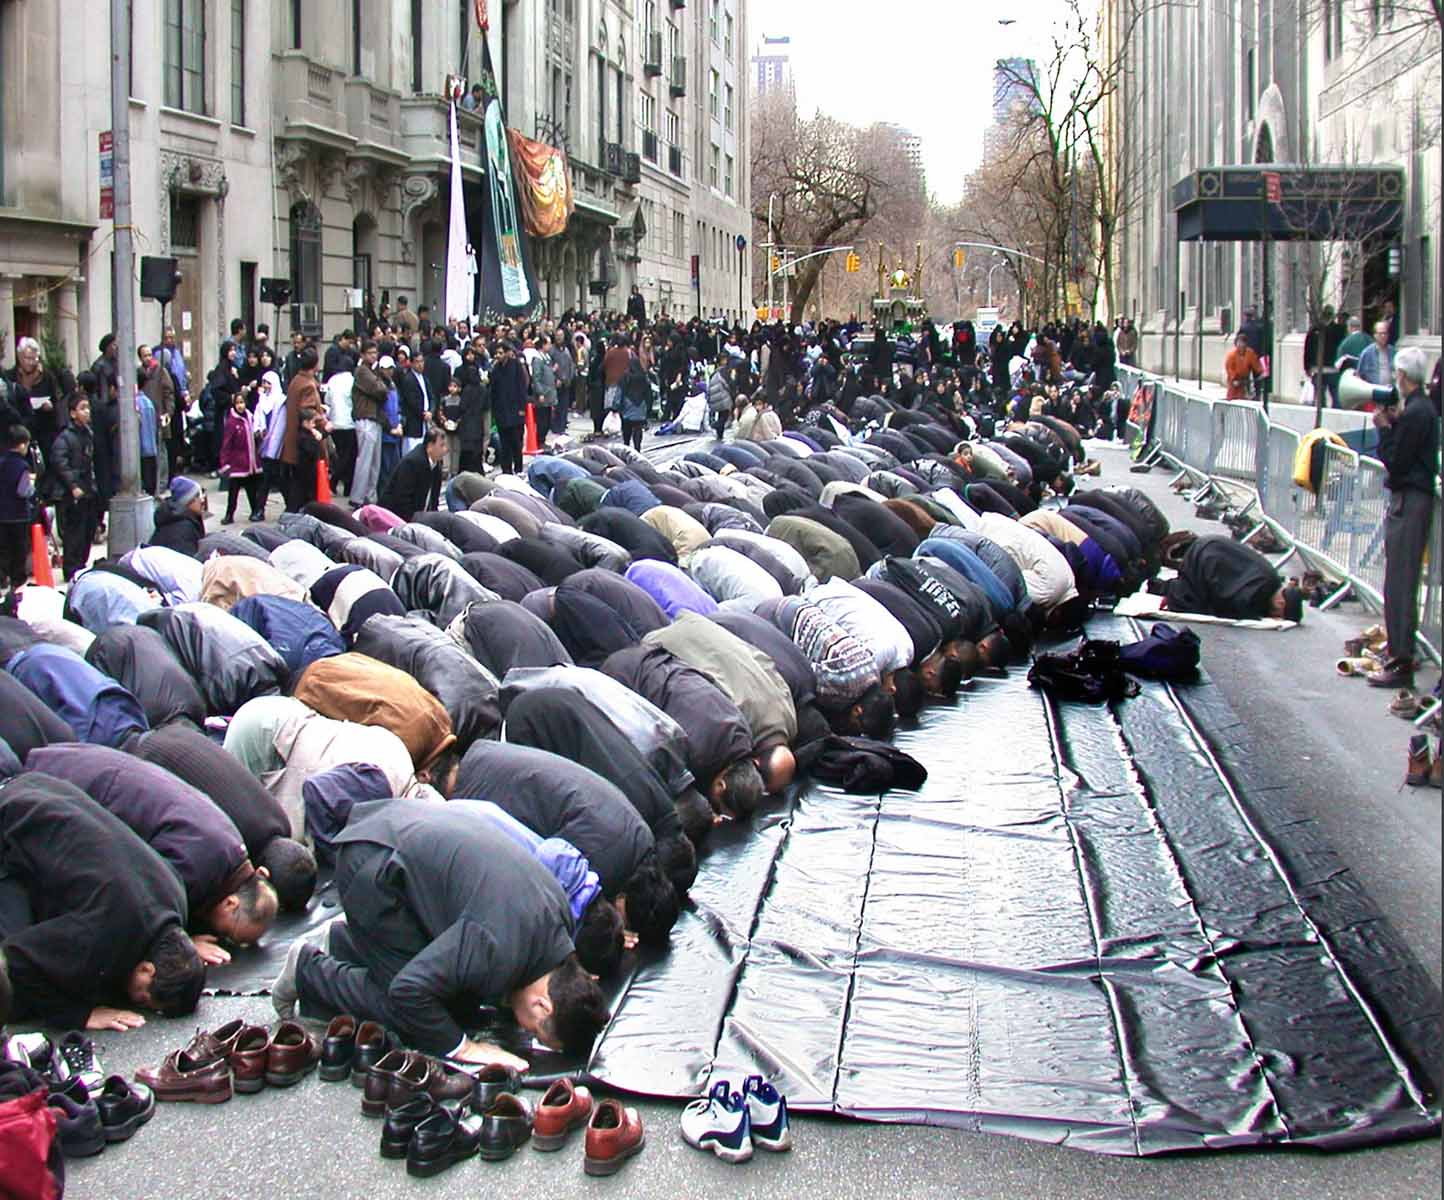 Muslims worship on the street on the East Side, Manhattan.